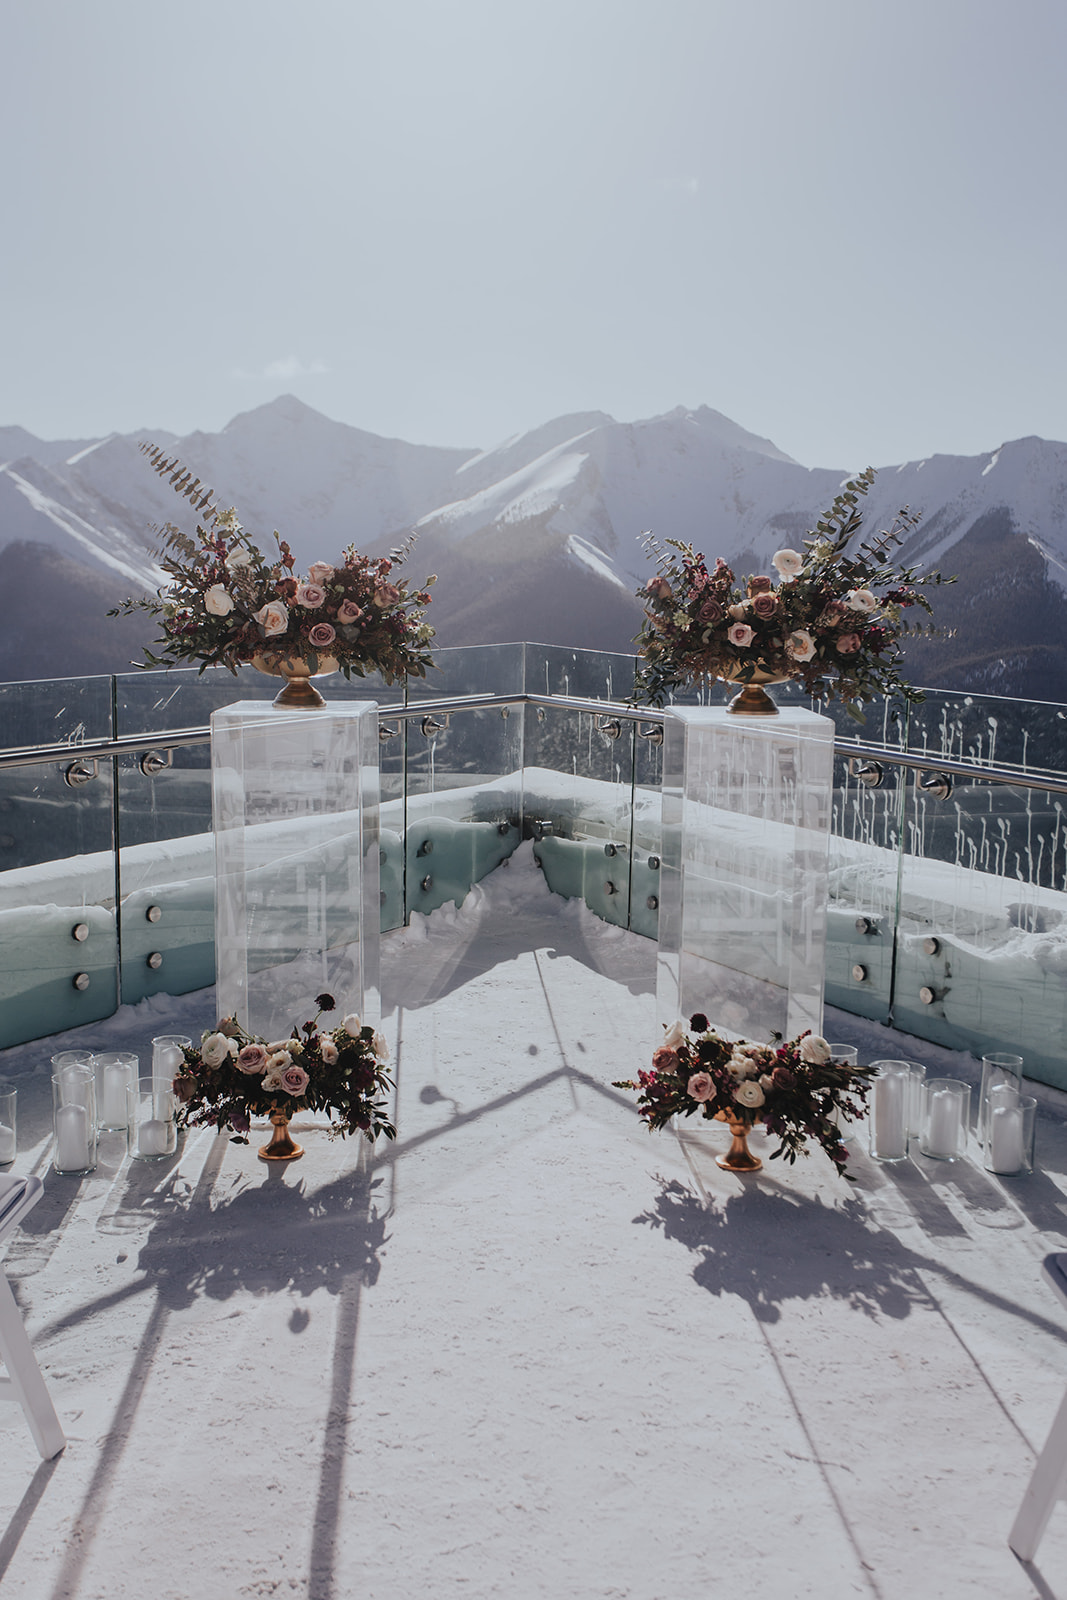 Outdoor winter wedding at Sky Bistro Banff, Flowers by Janie, pedestals of flowers.jpg